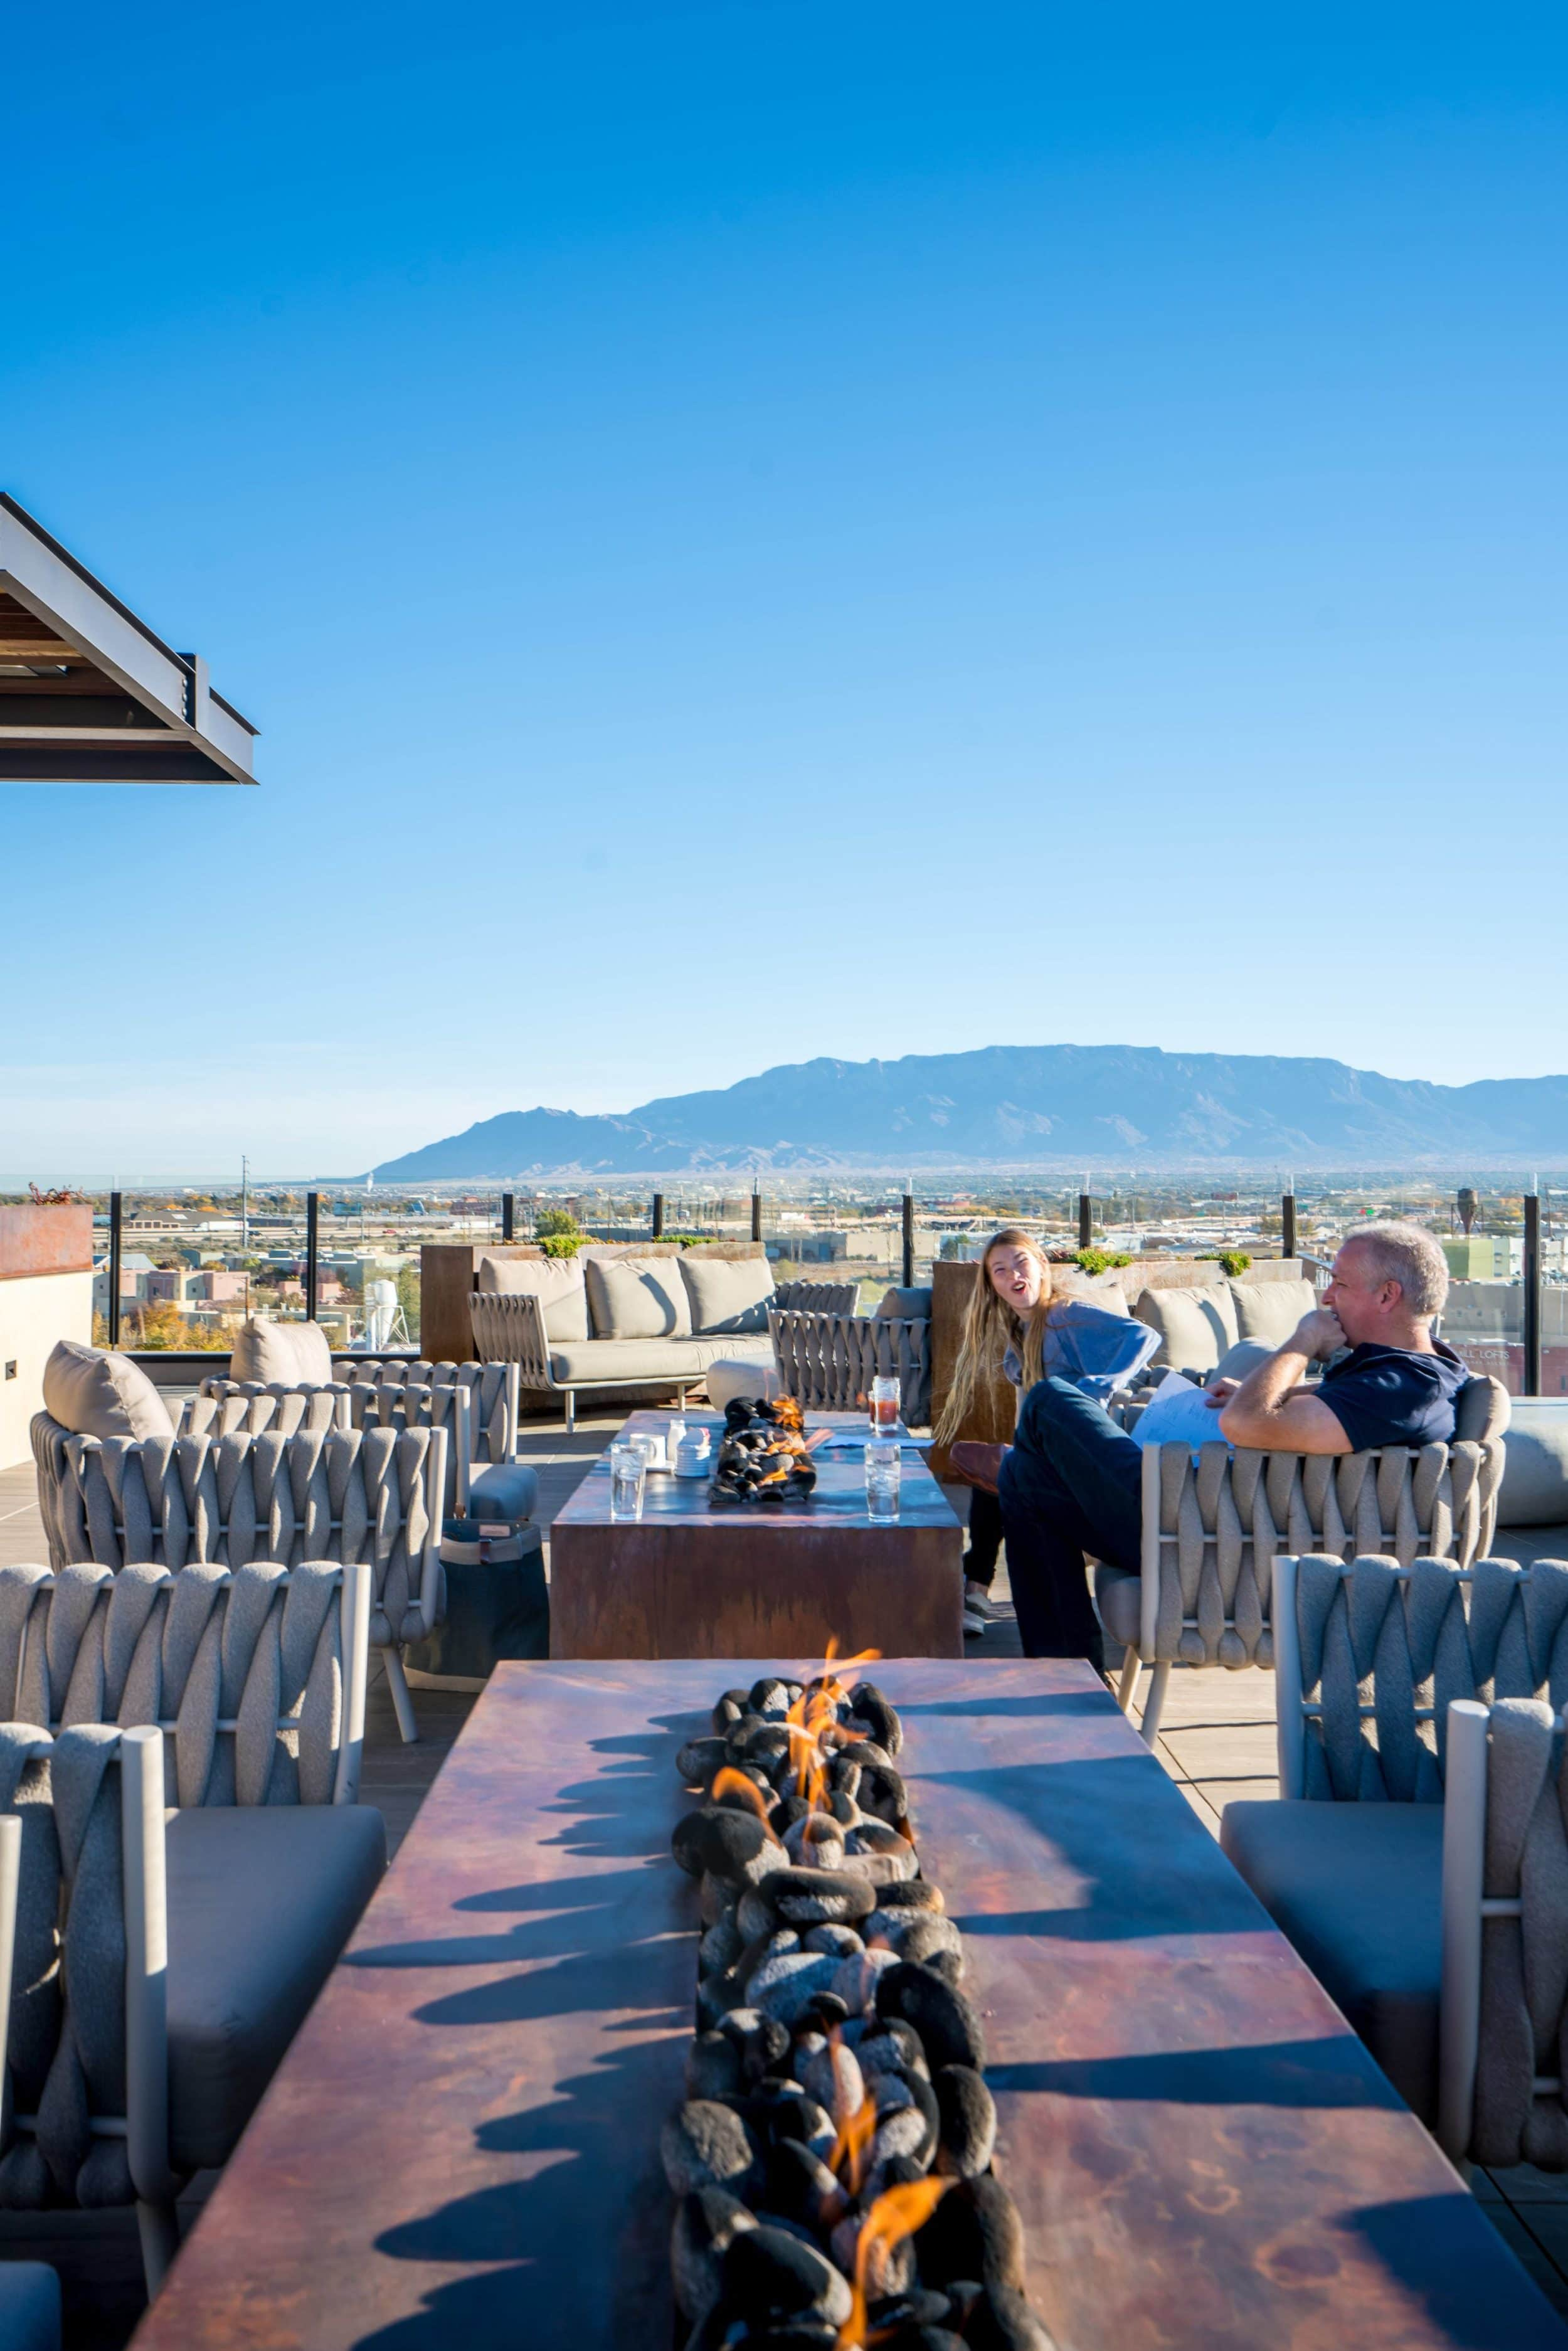 Breakfast on the rooftop at Hotel Chaco in Albuquerque with a view of the Sandia Mountains.